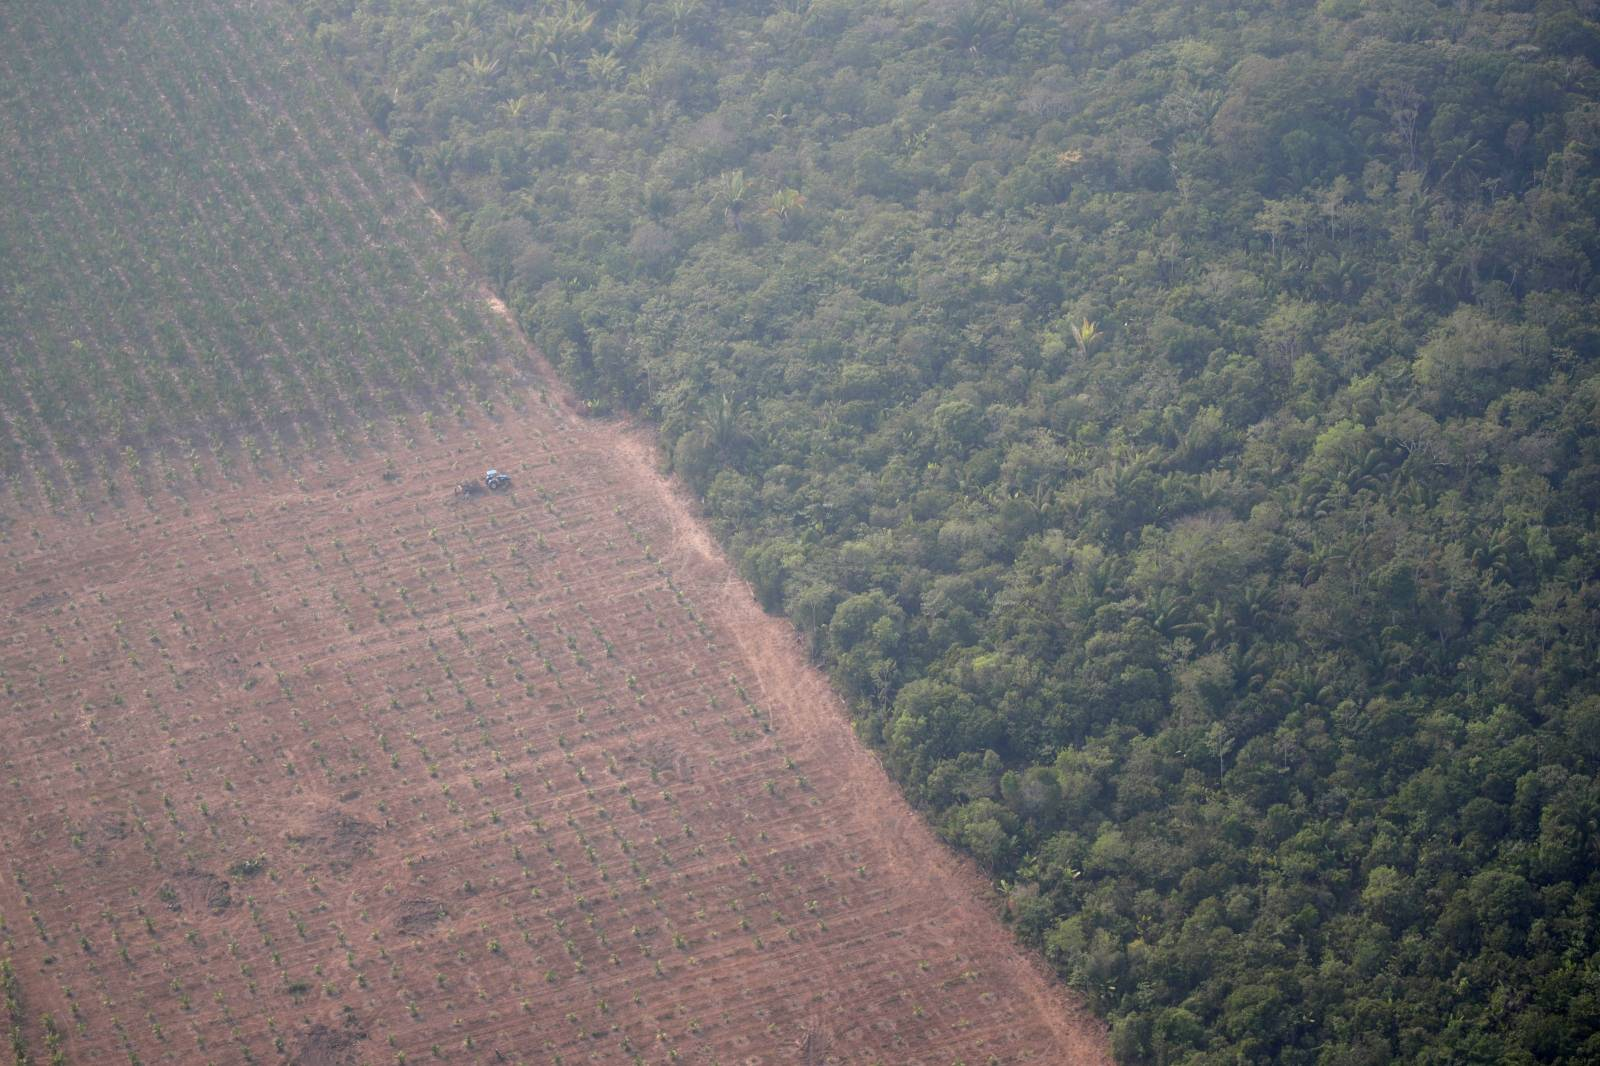 An aerial view shows a tractor on a plantation near a deforested plot of the Amazon near Porto Velho